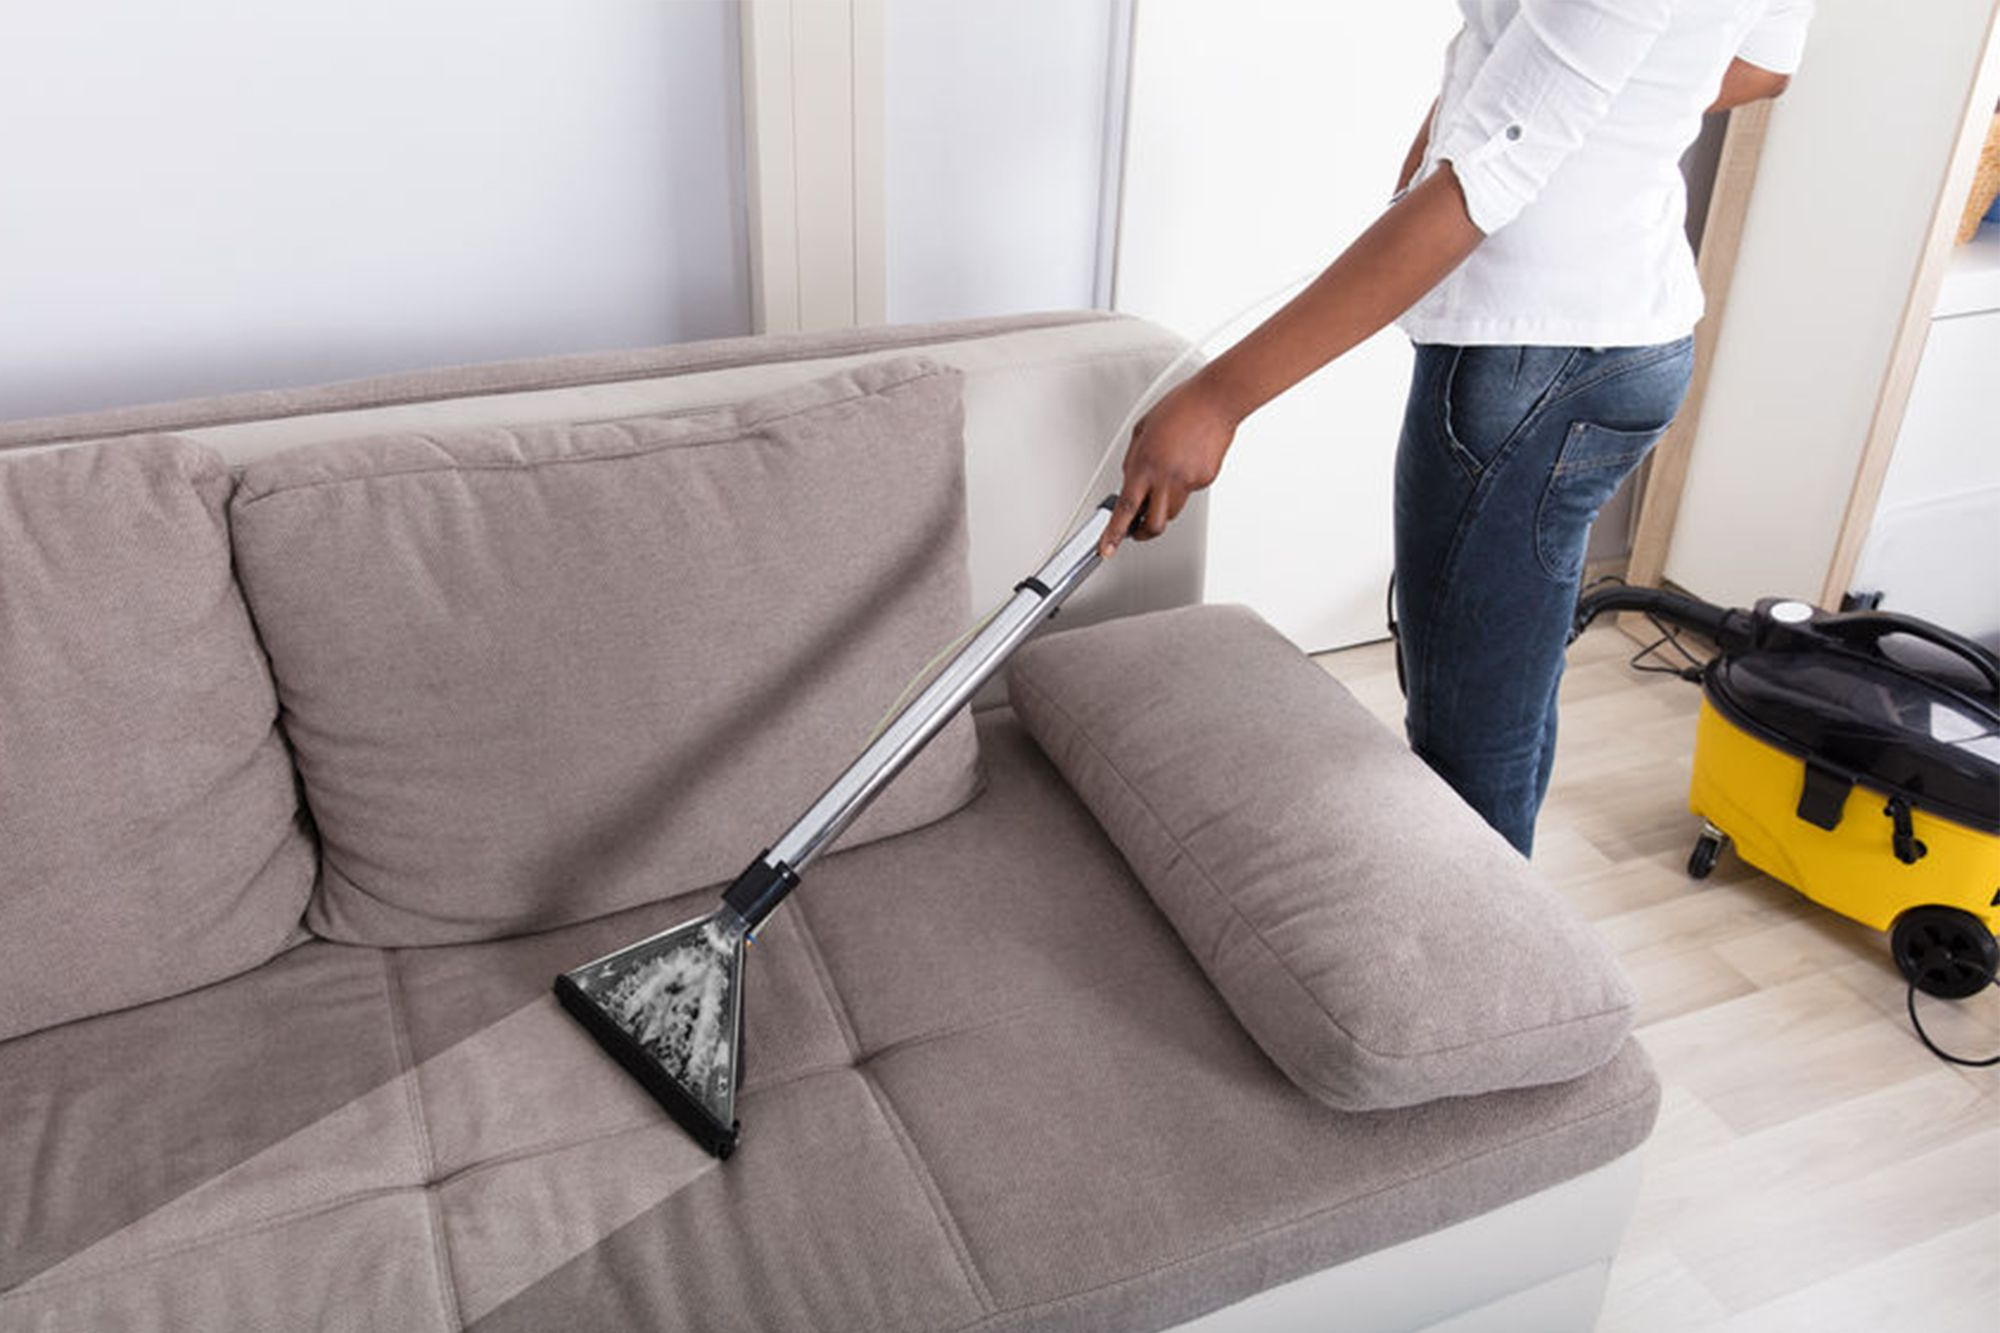 Upholstery Cleaning Methods Should Not Over Wet Clean Sofa Cleaning Upholstery Sofa Cleaning Services